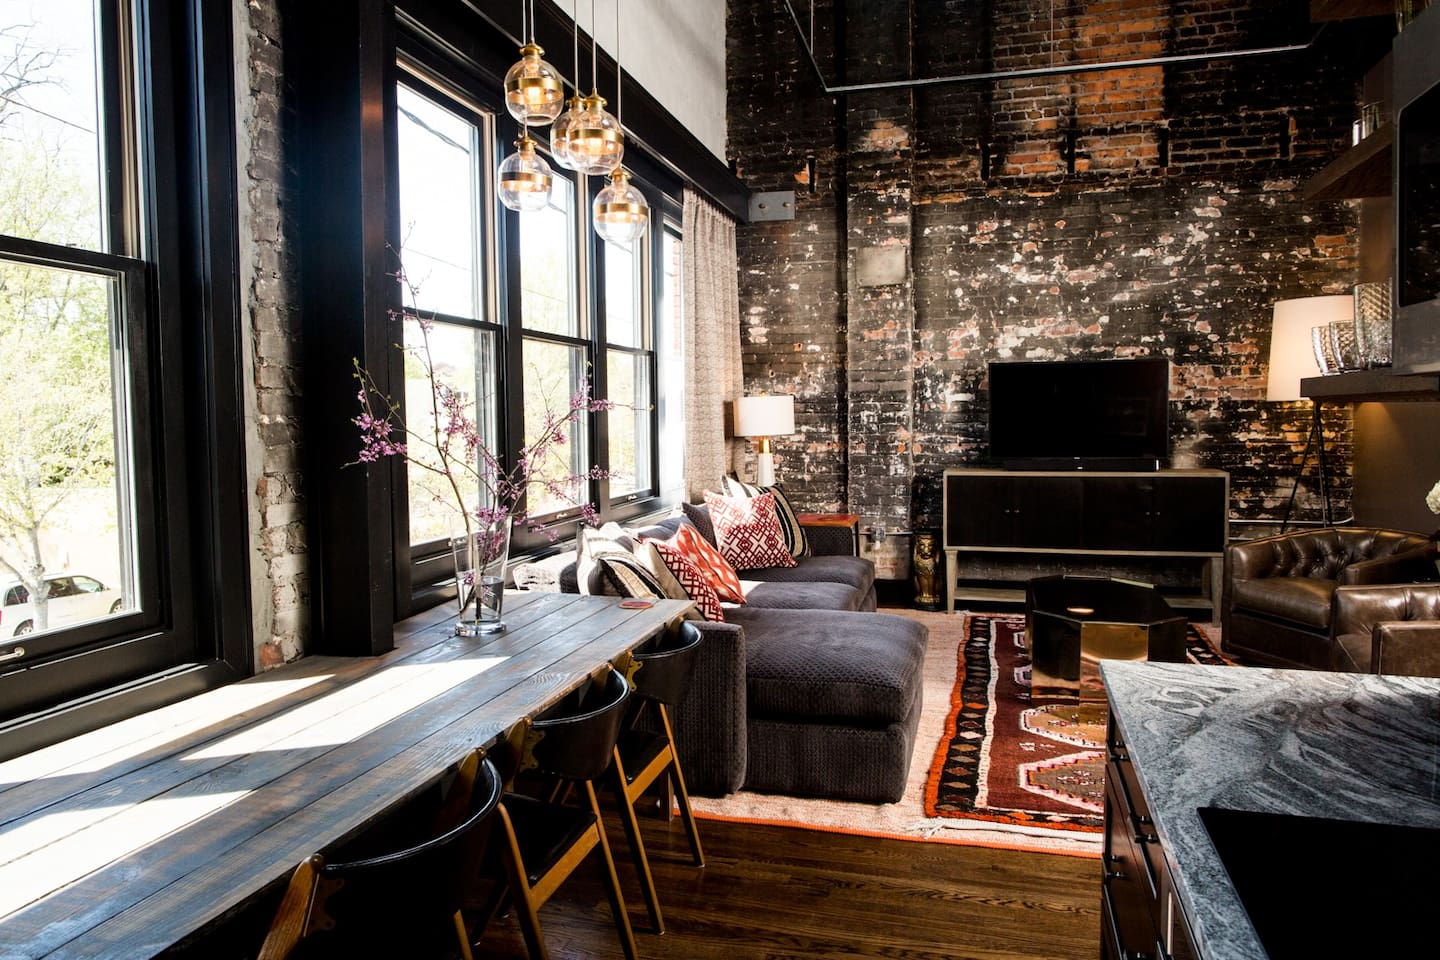 80 LEX : APARTMENT 201 : EXQUISITE LODGING : 639 SQ. FT. ONE KING BEDROOM / ONE FULL PRIVATE BATHROOM